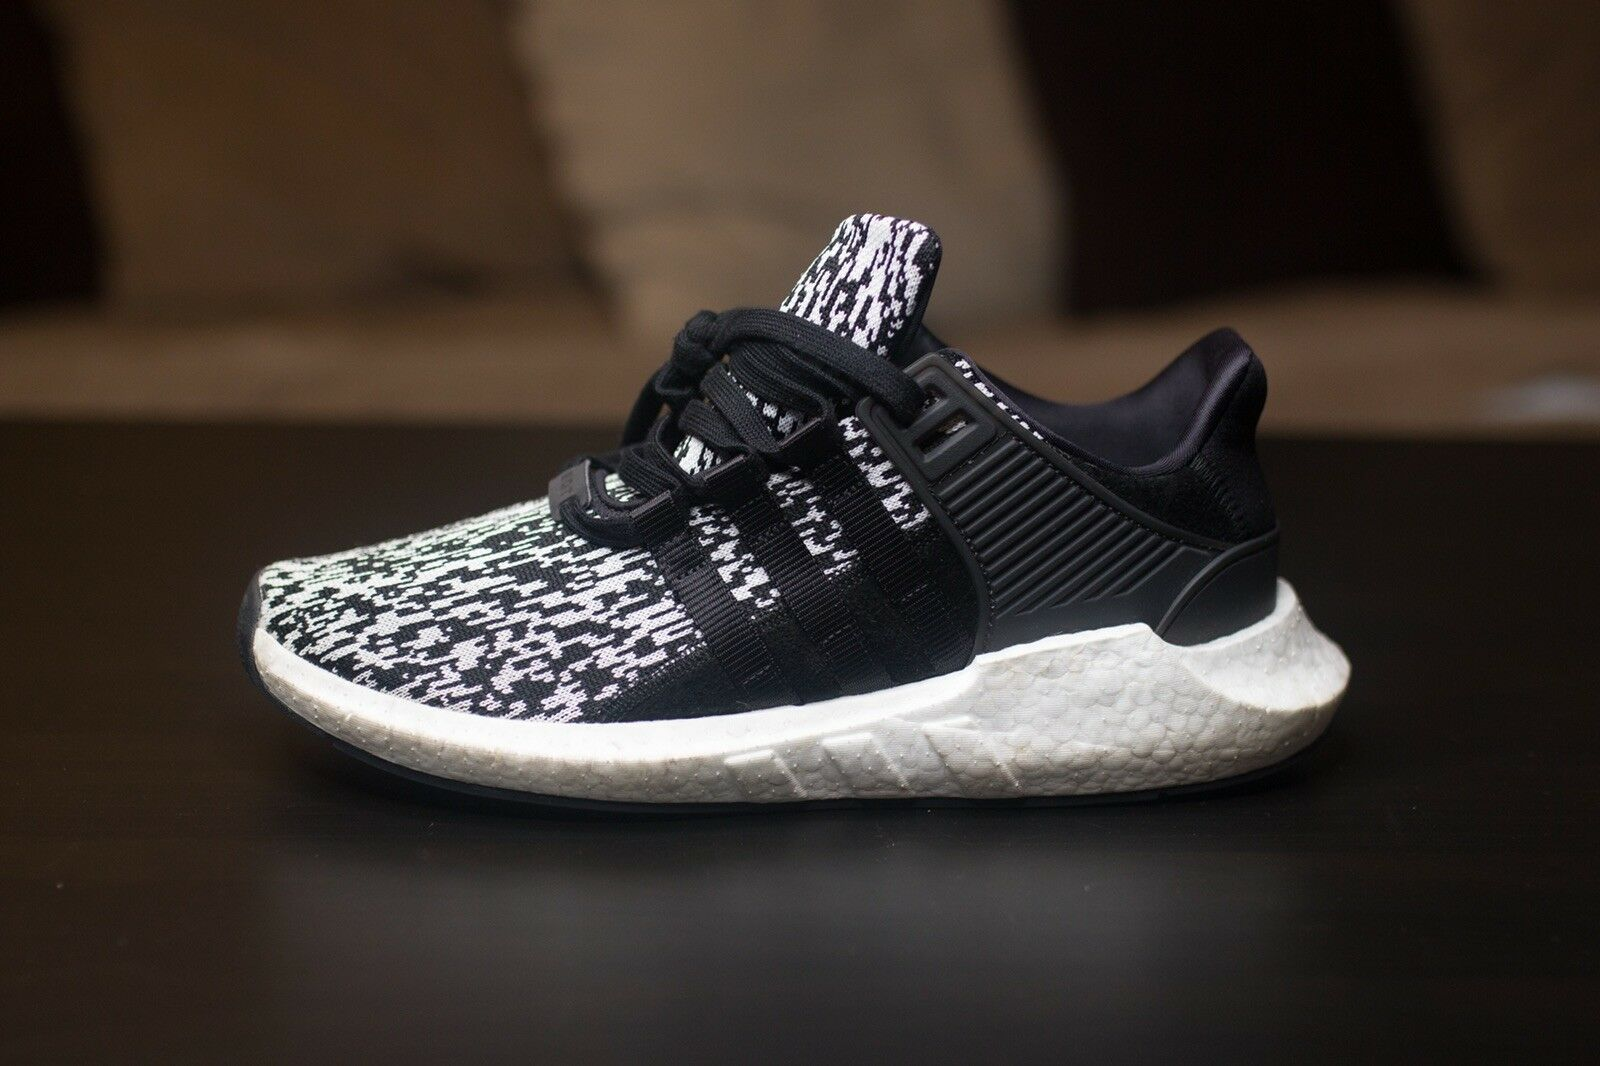 Adidas EQT Support Support Support 93 17 Black Glitch Size 10.5 Authentic w Box BOOST YEEZY NMD ae4219